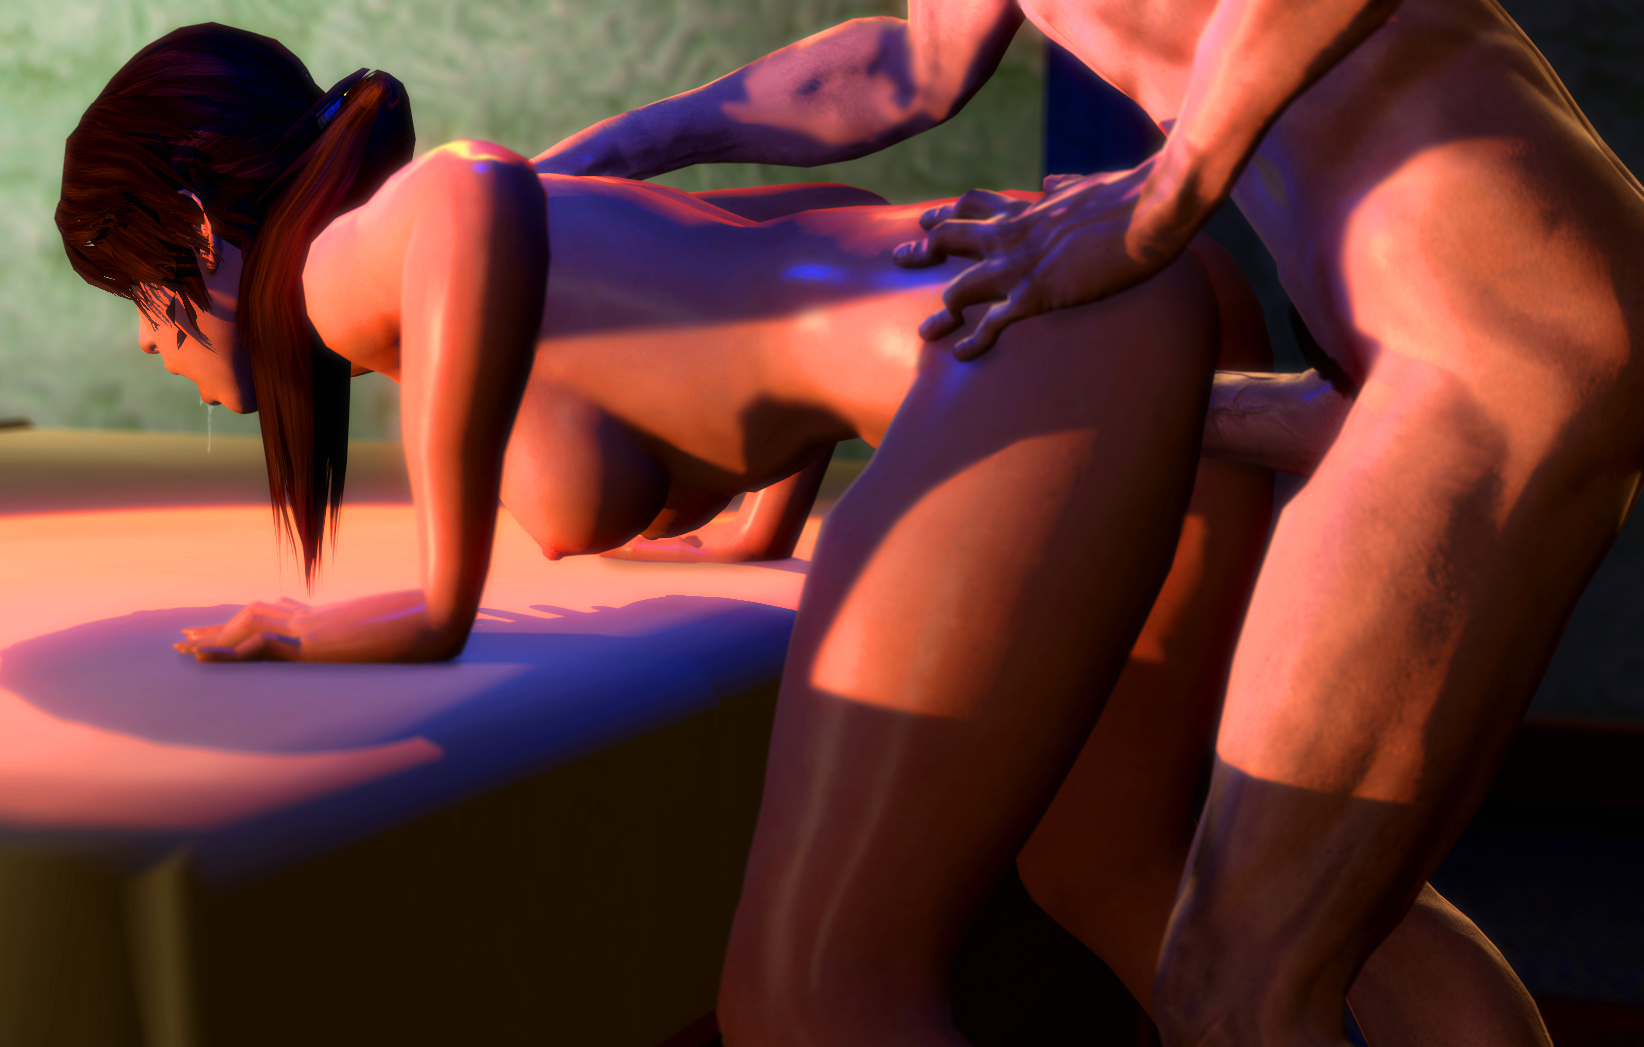 Rule 34 tomb raider 2013 fucking gallery